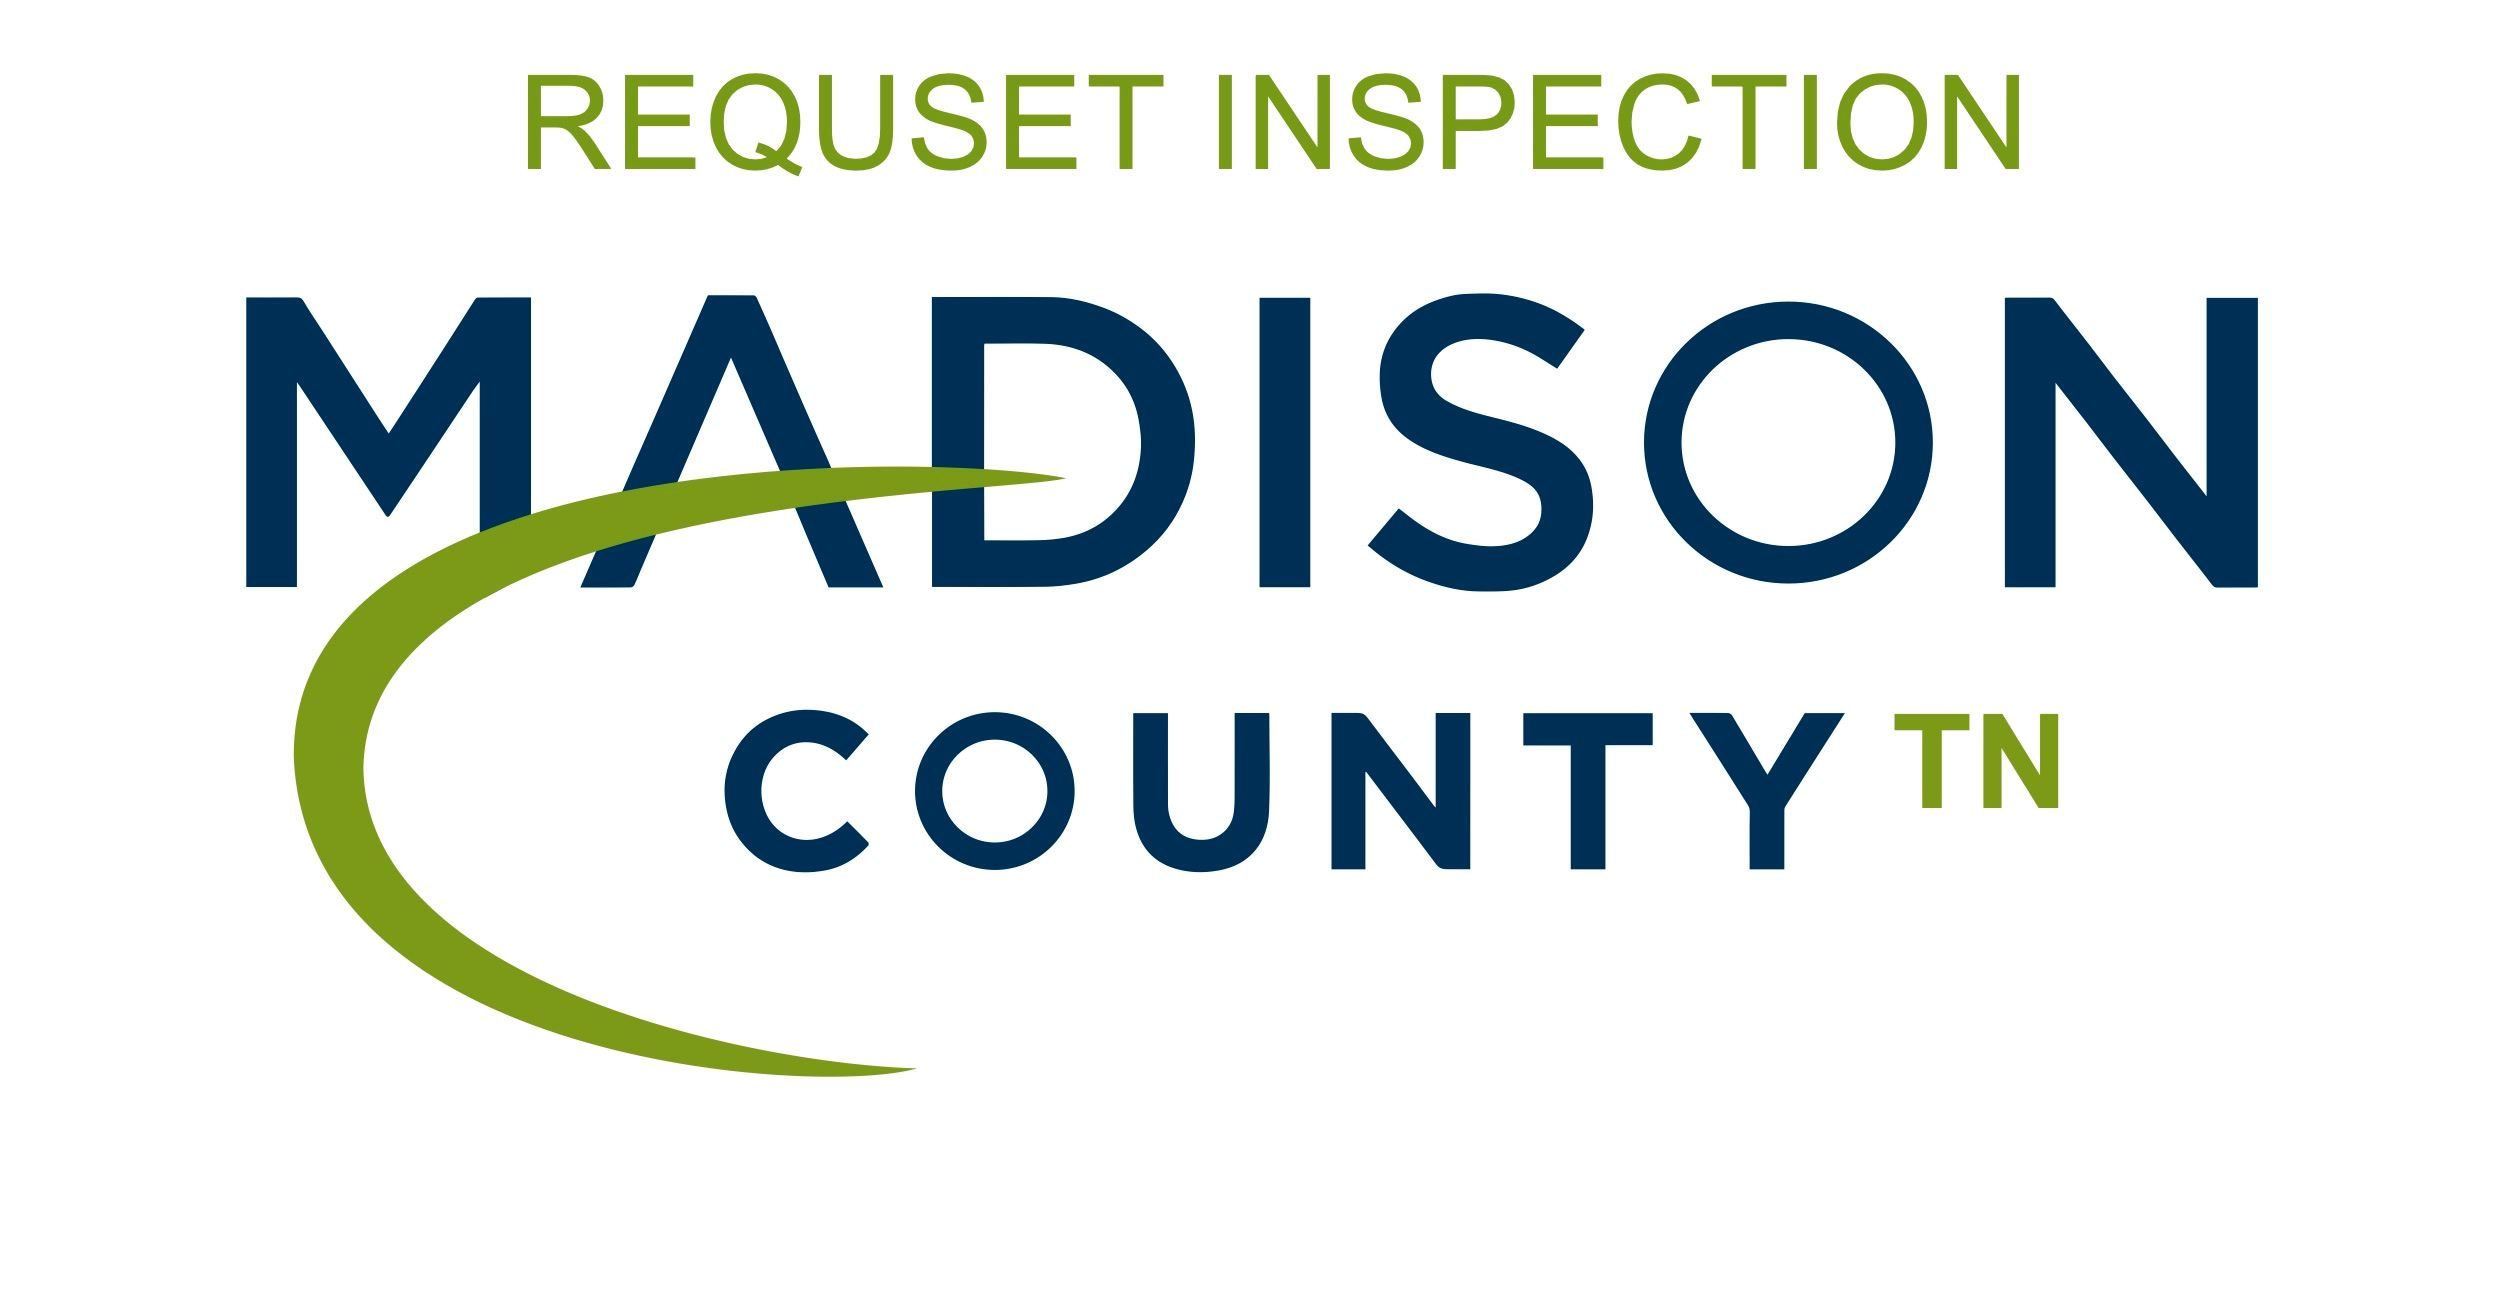 REQUEST INSPECTION IMAGE